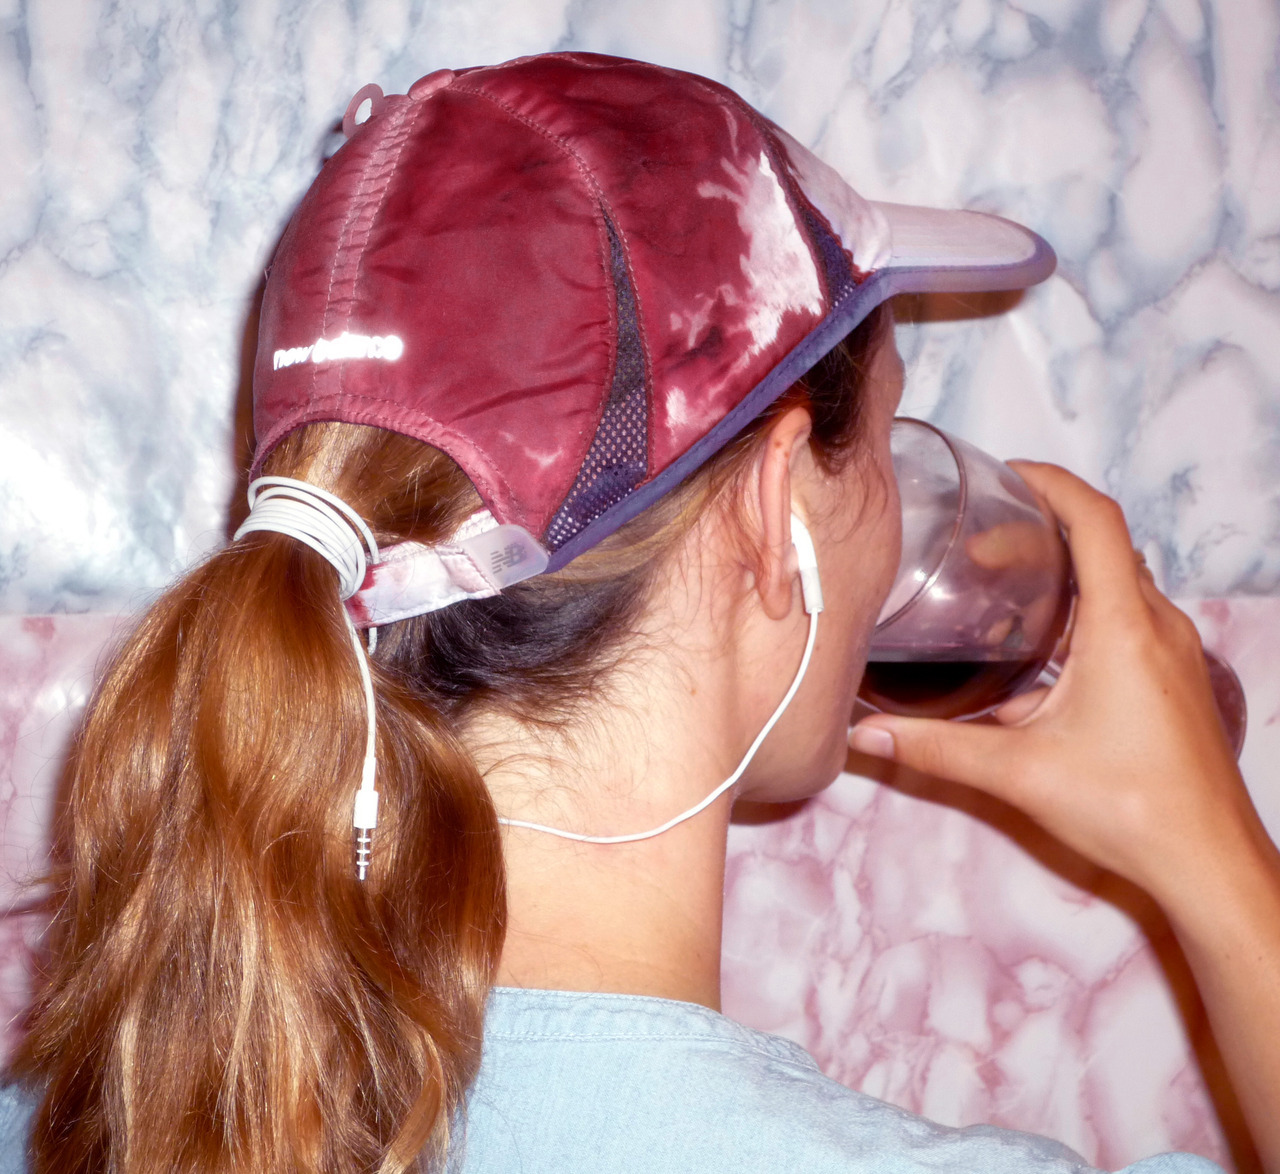 Pomegranate-stained runner's cap worn at wine-tasting, 2012 Performance Ω™